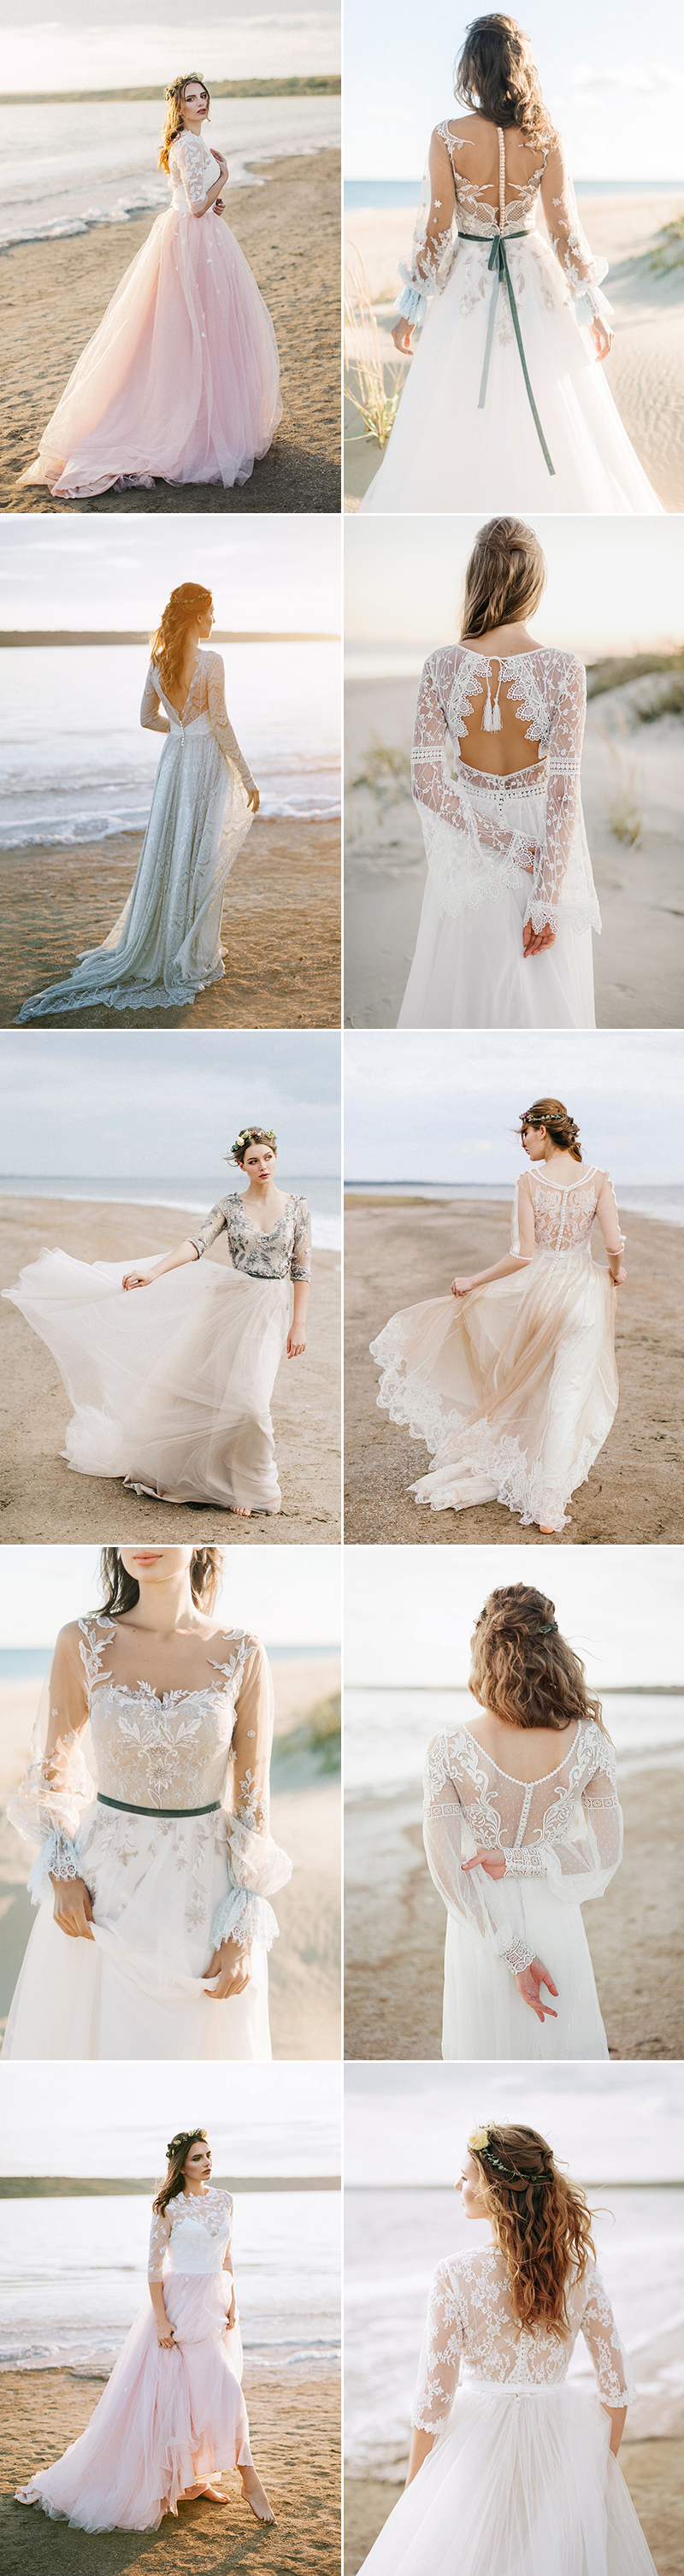 Beach Alternative Wedding Dress